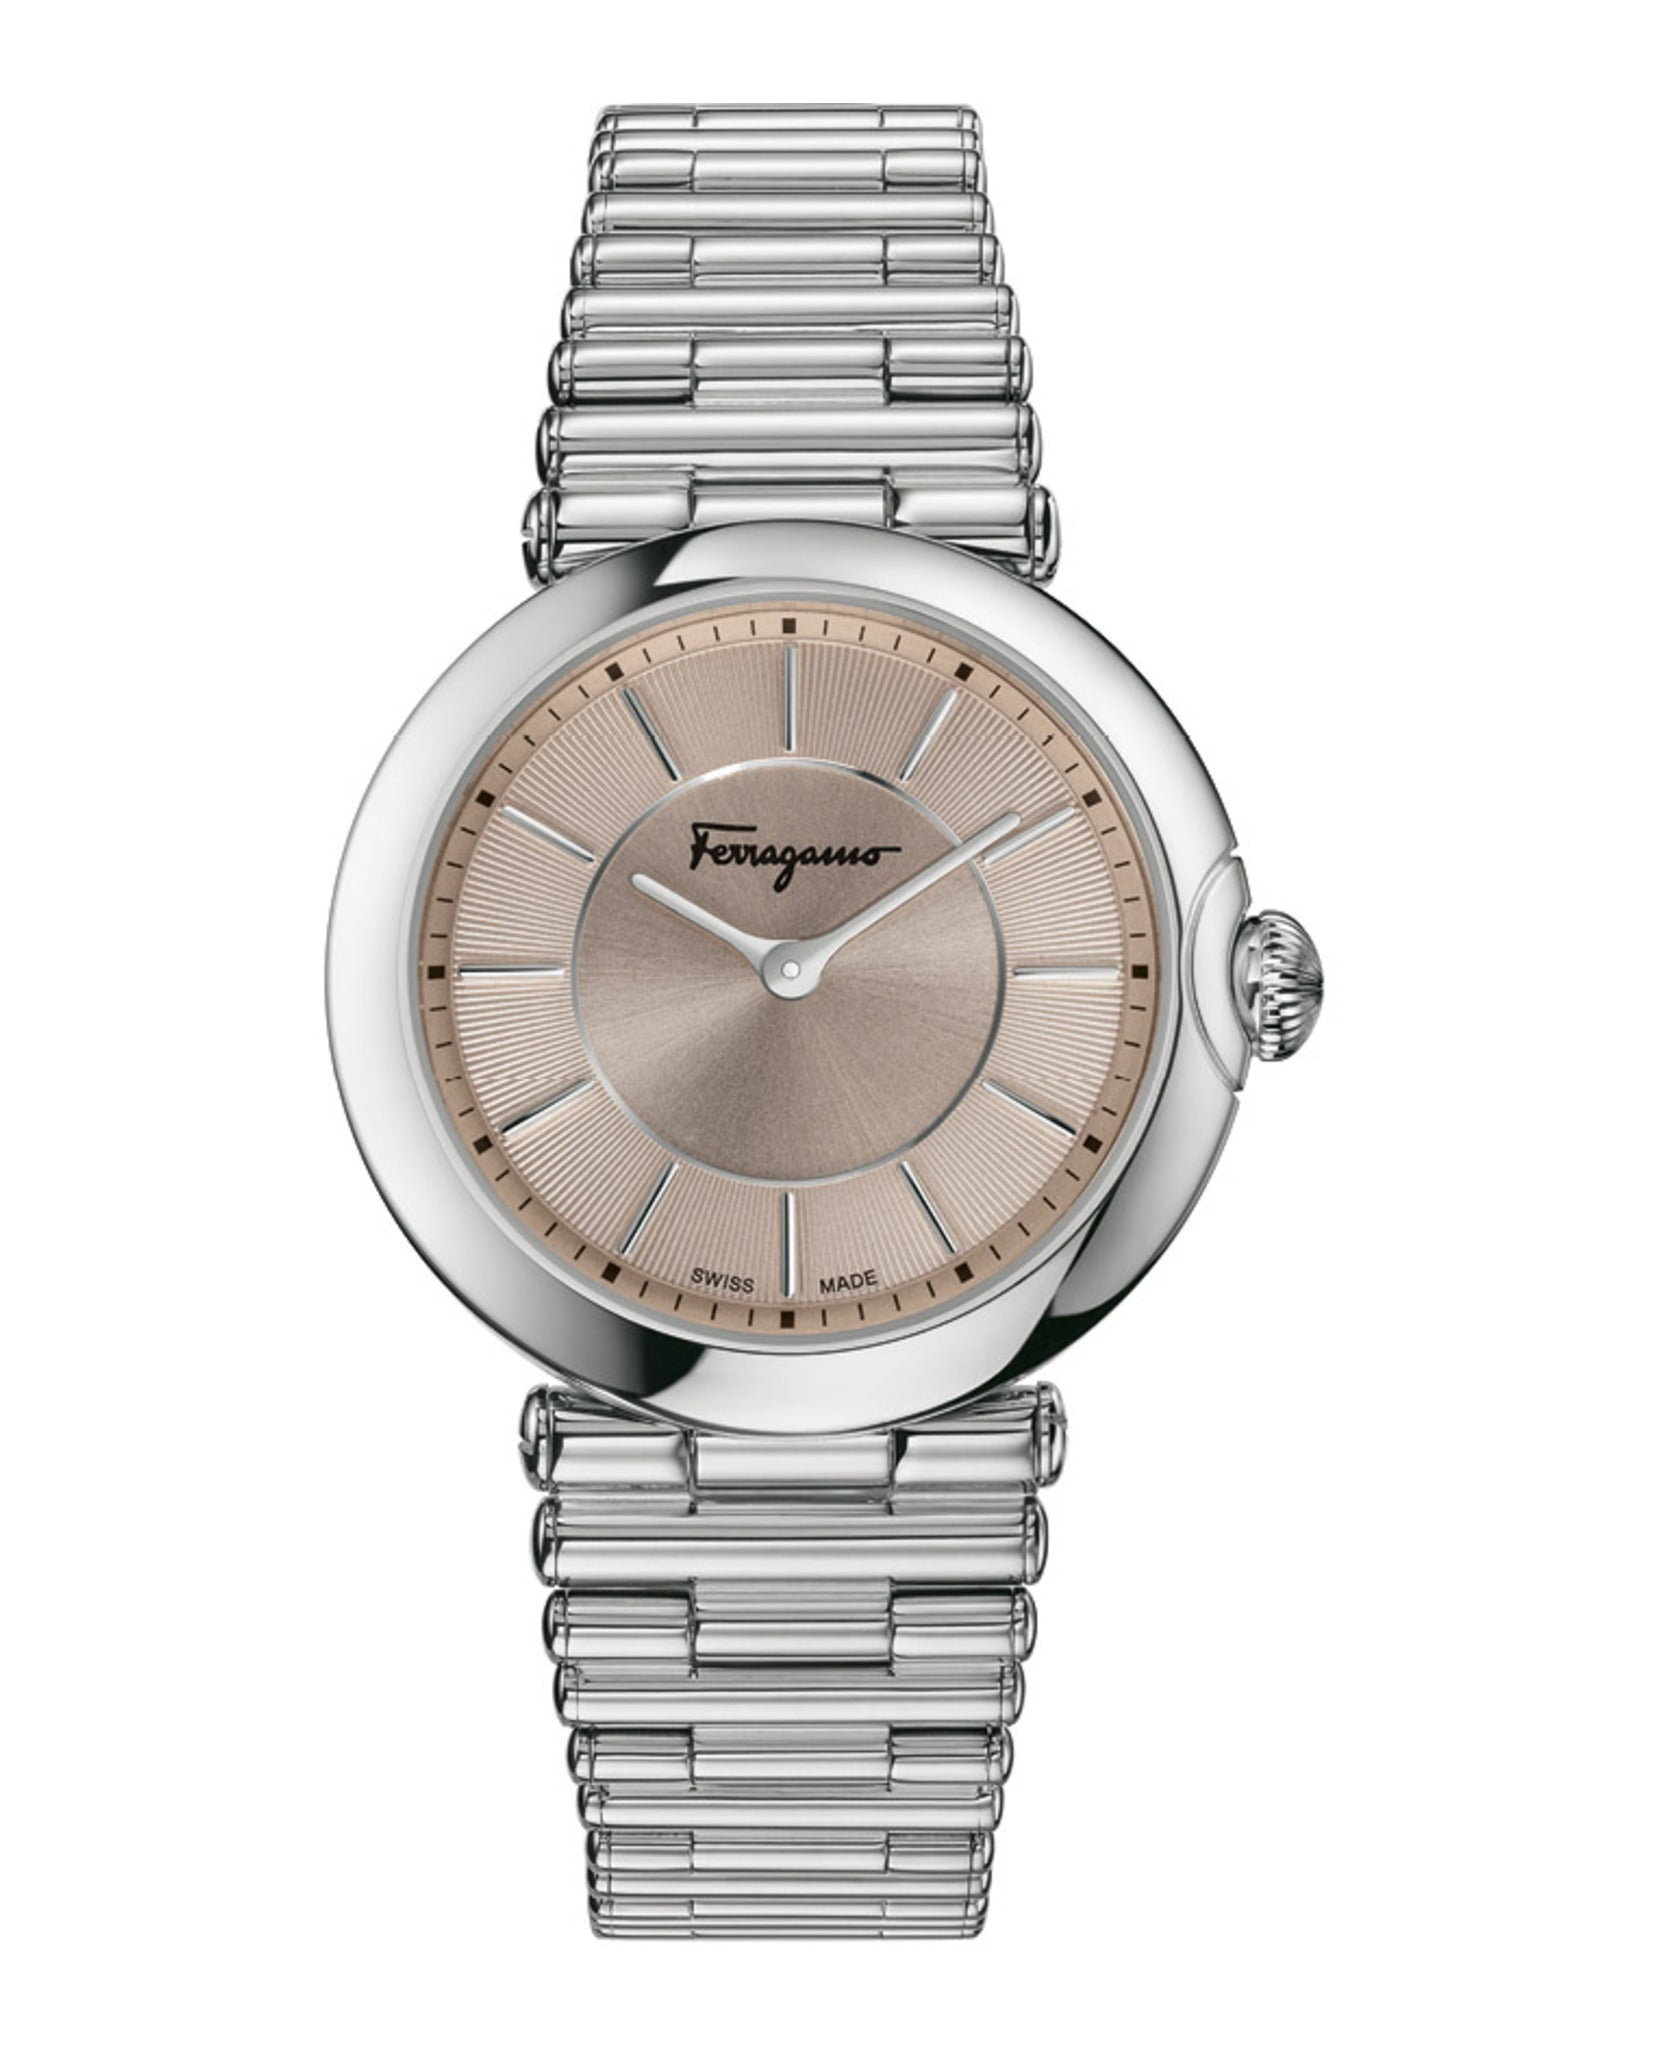 Salvatore Ferragamo Ferragamo Style Watch